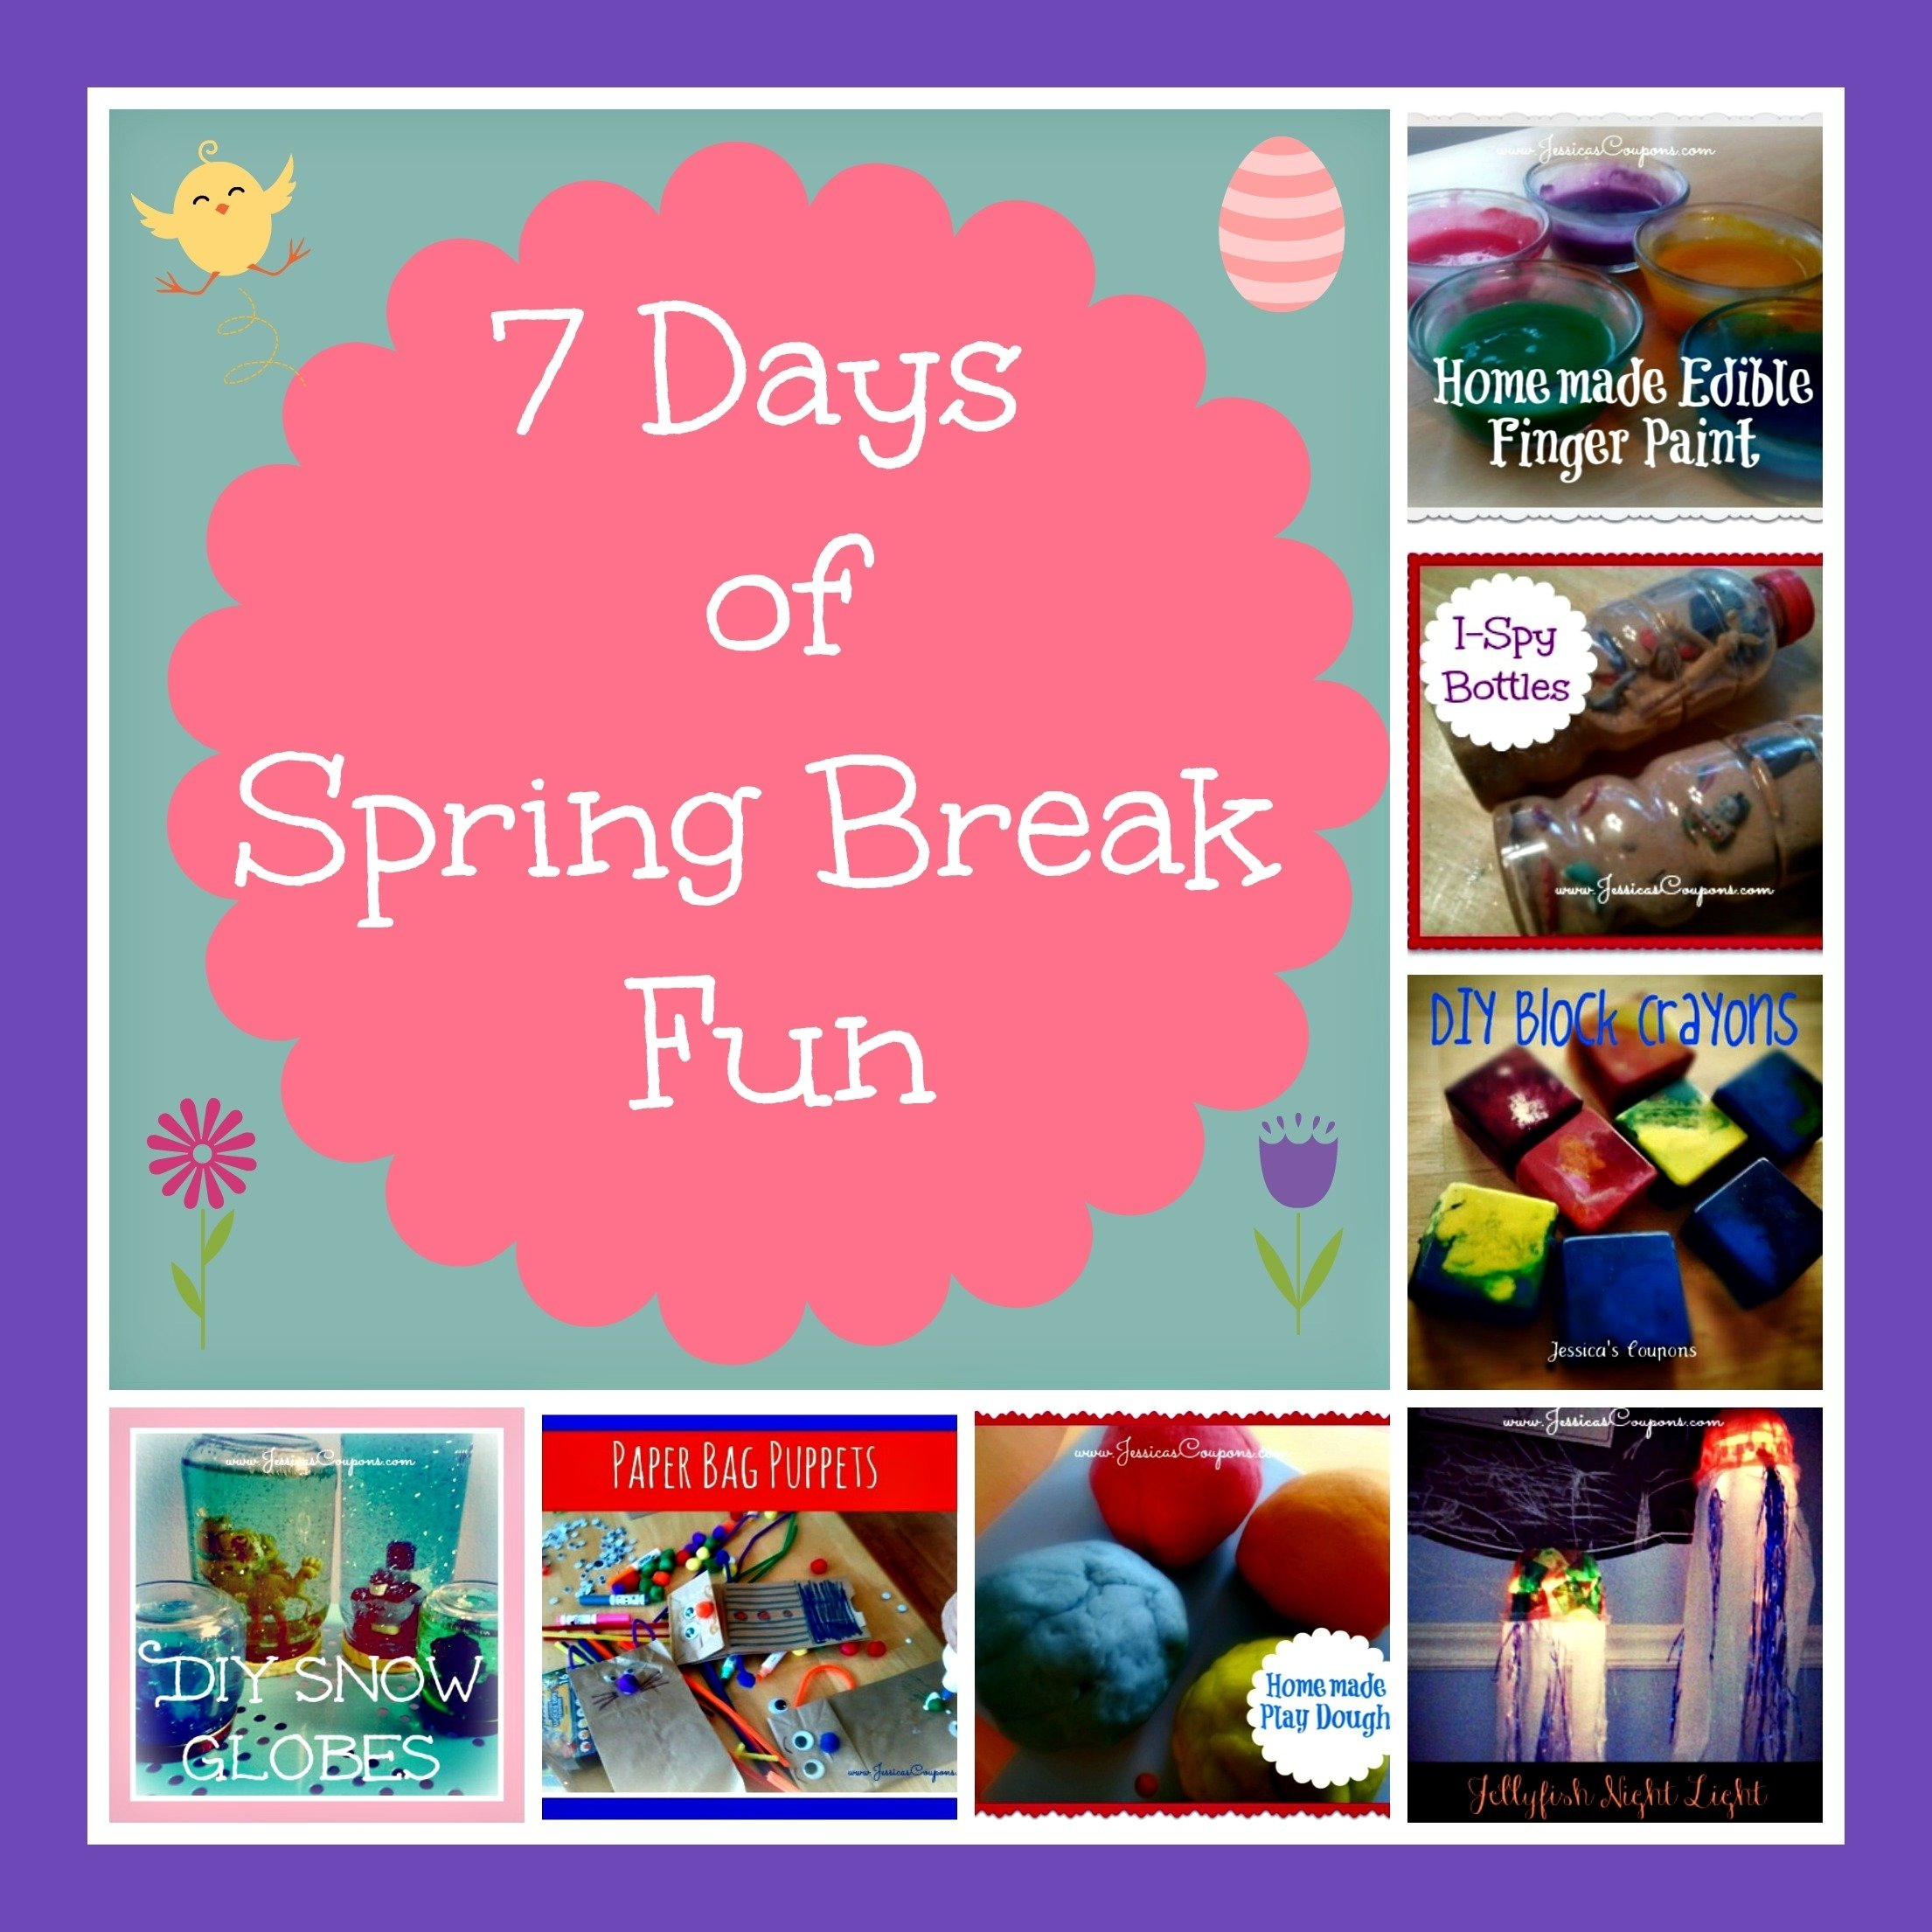 10 Attractive Spring Break Ideas For Kids 7 days of spring break fun crafts projects for the kids 2021